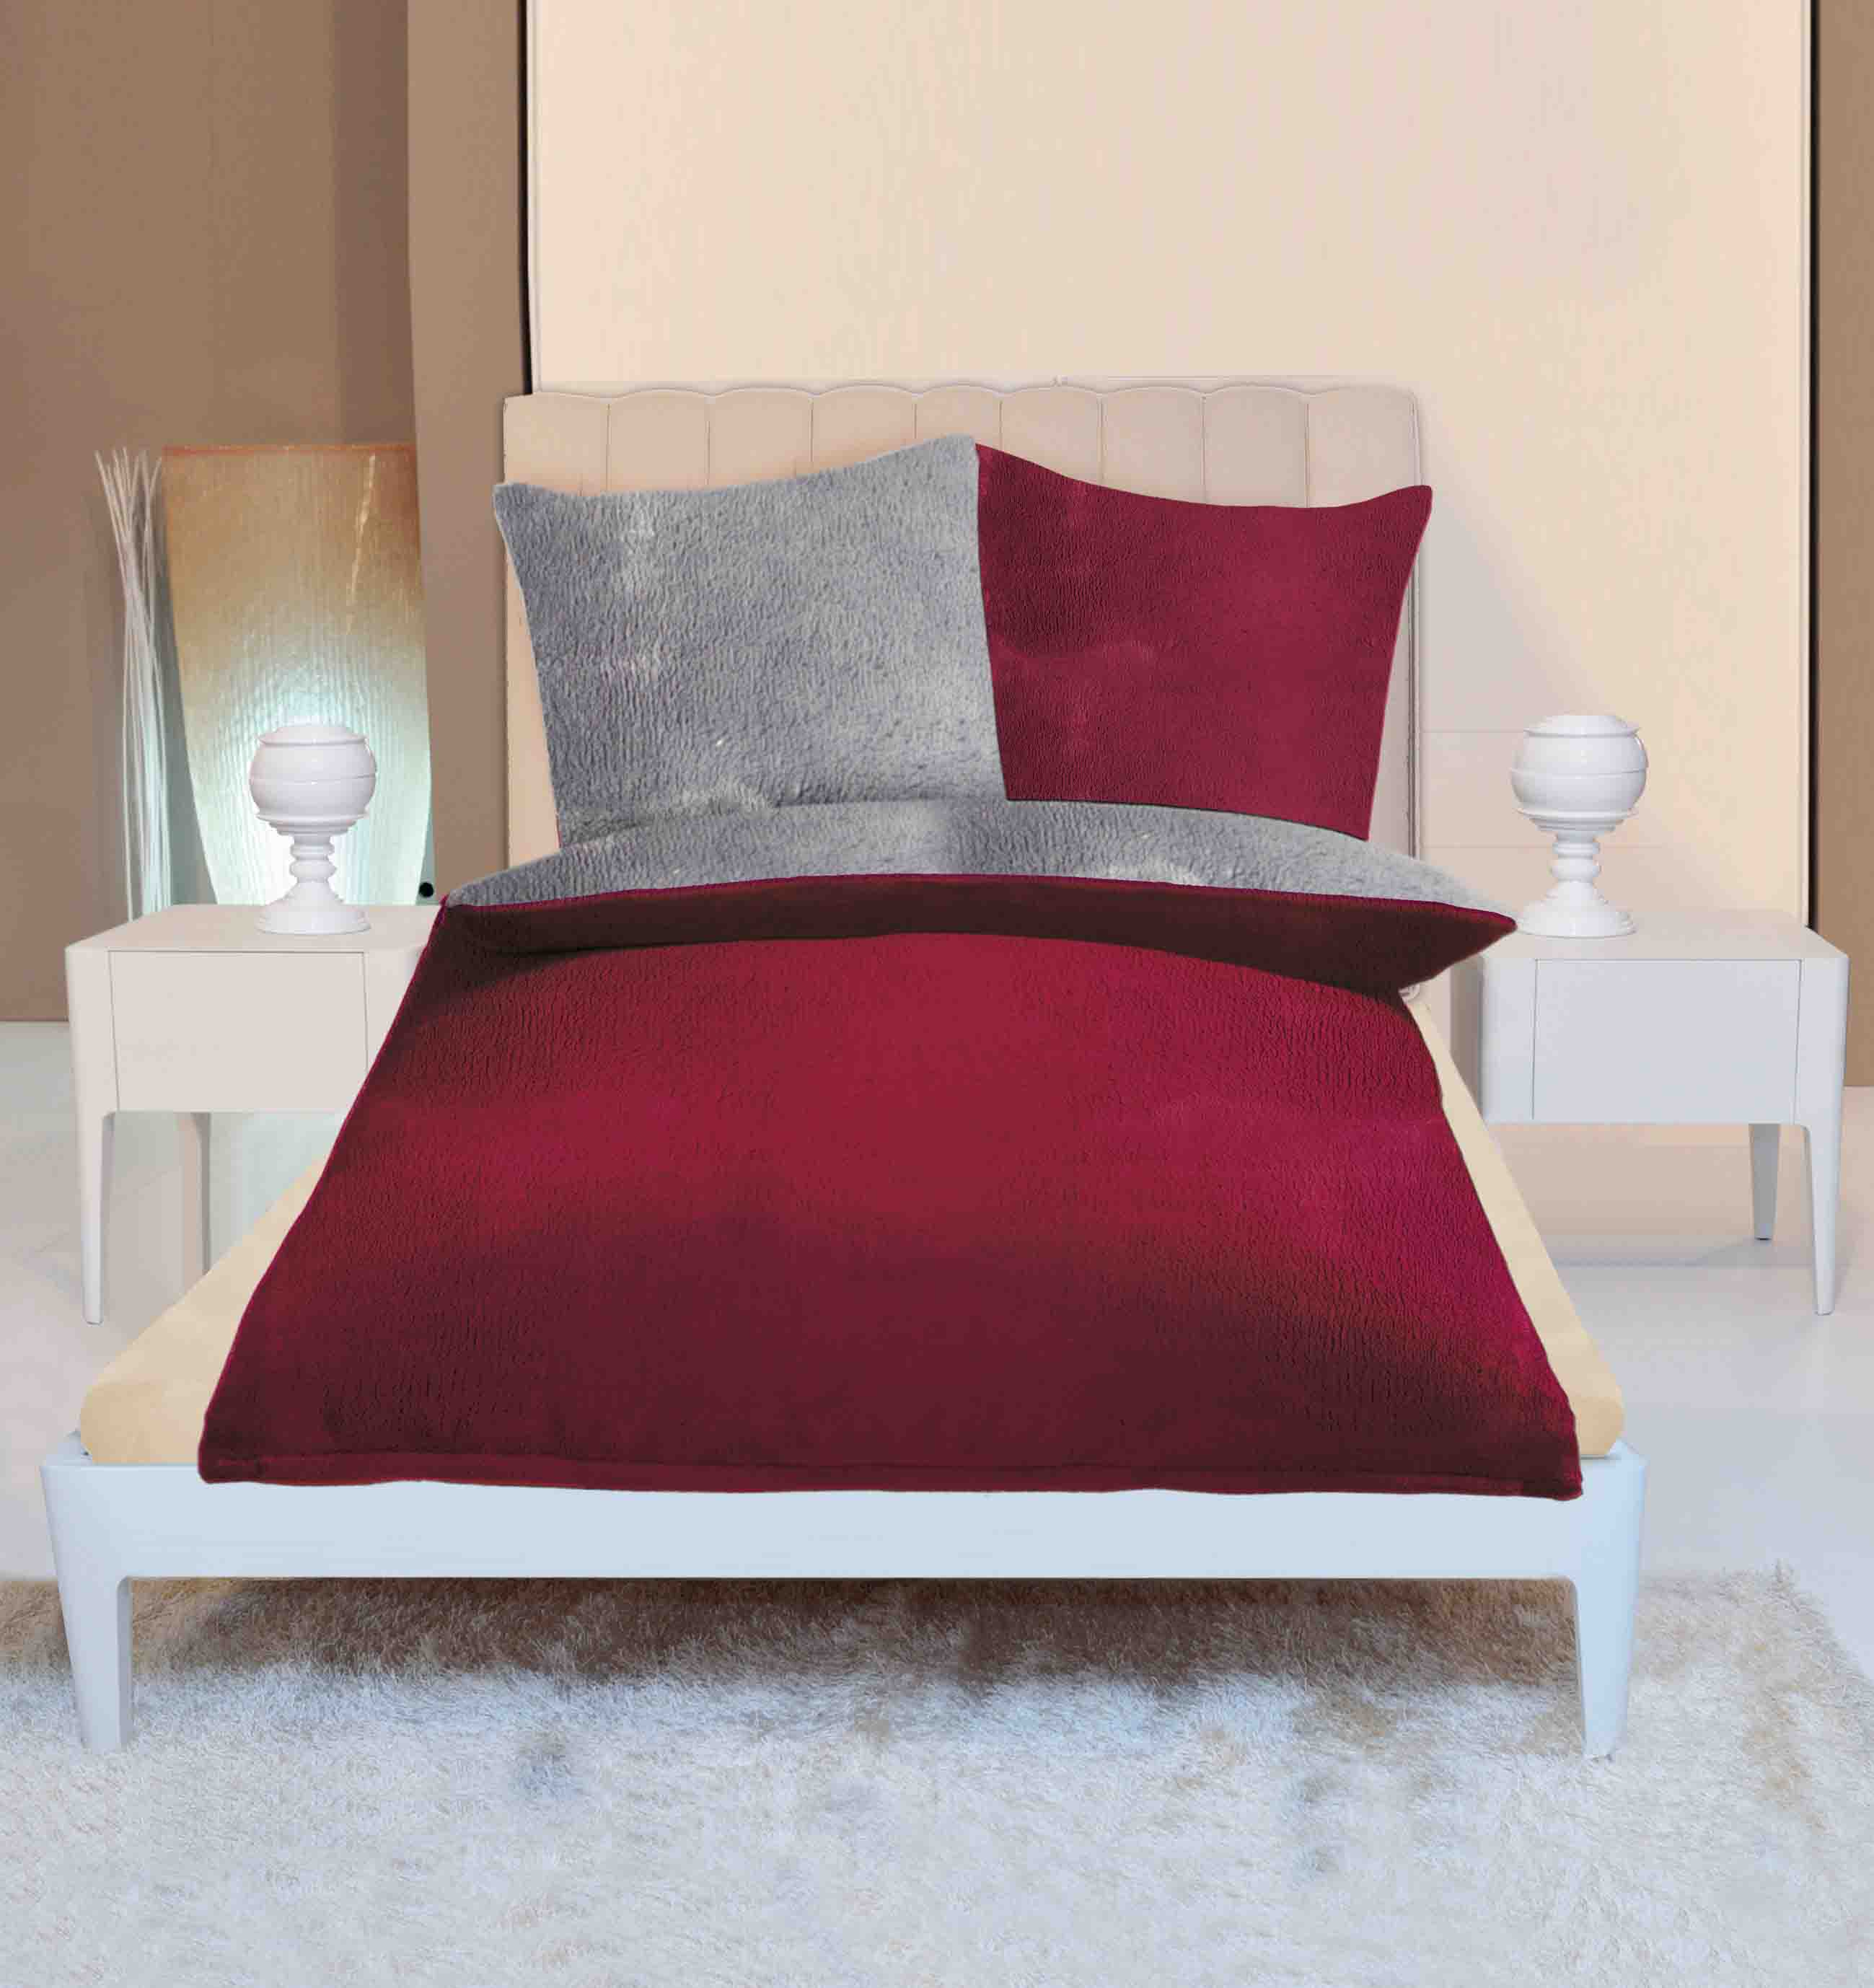 Cashmere Feeling Two Sided Bedclothes W F GÖzze Frottierweberei Gmbh